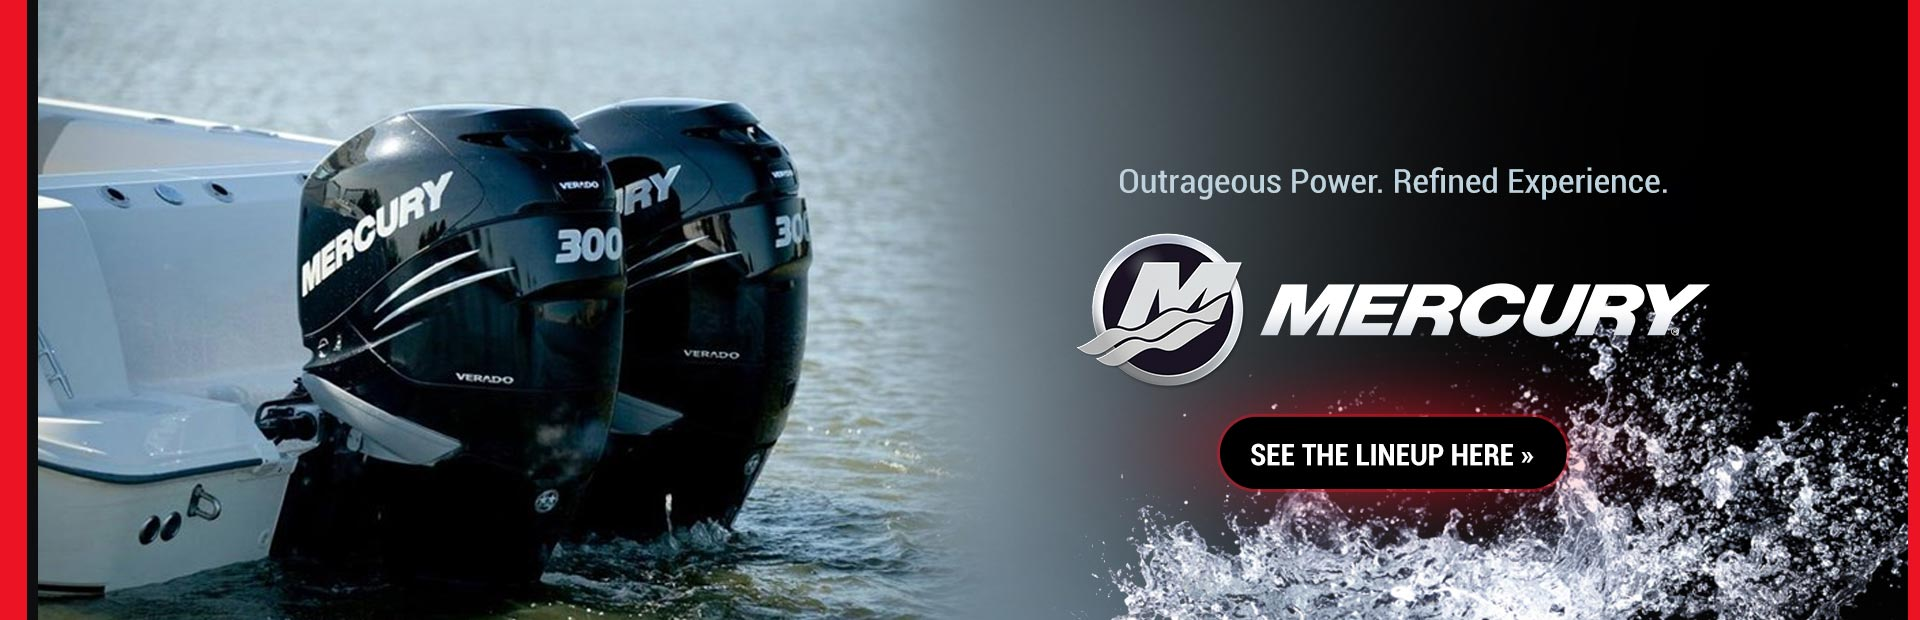 hight resolution of mercury outboard motors